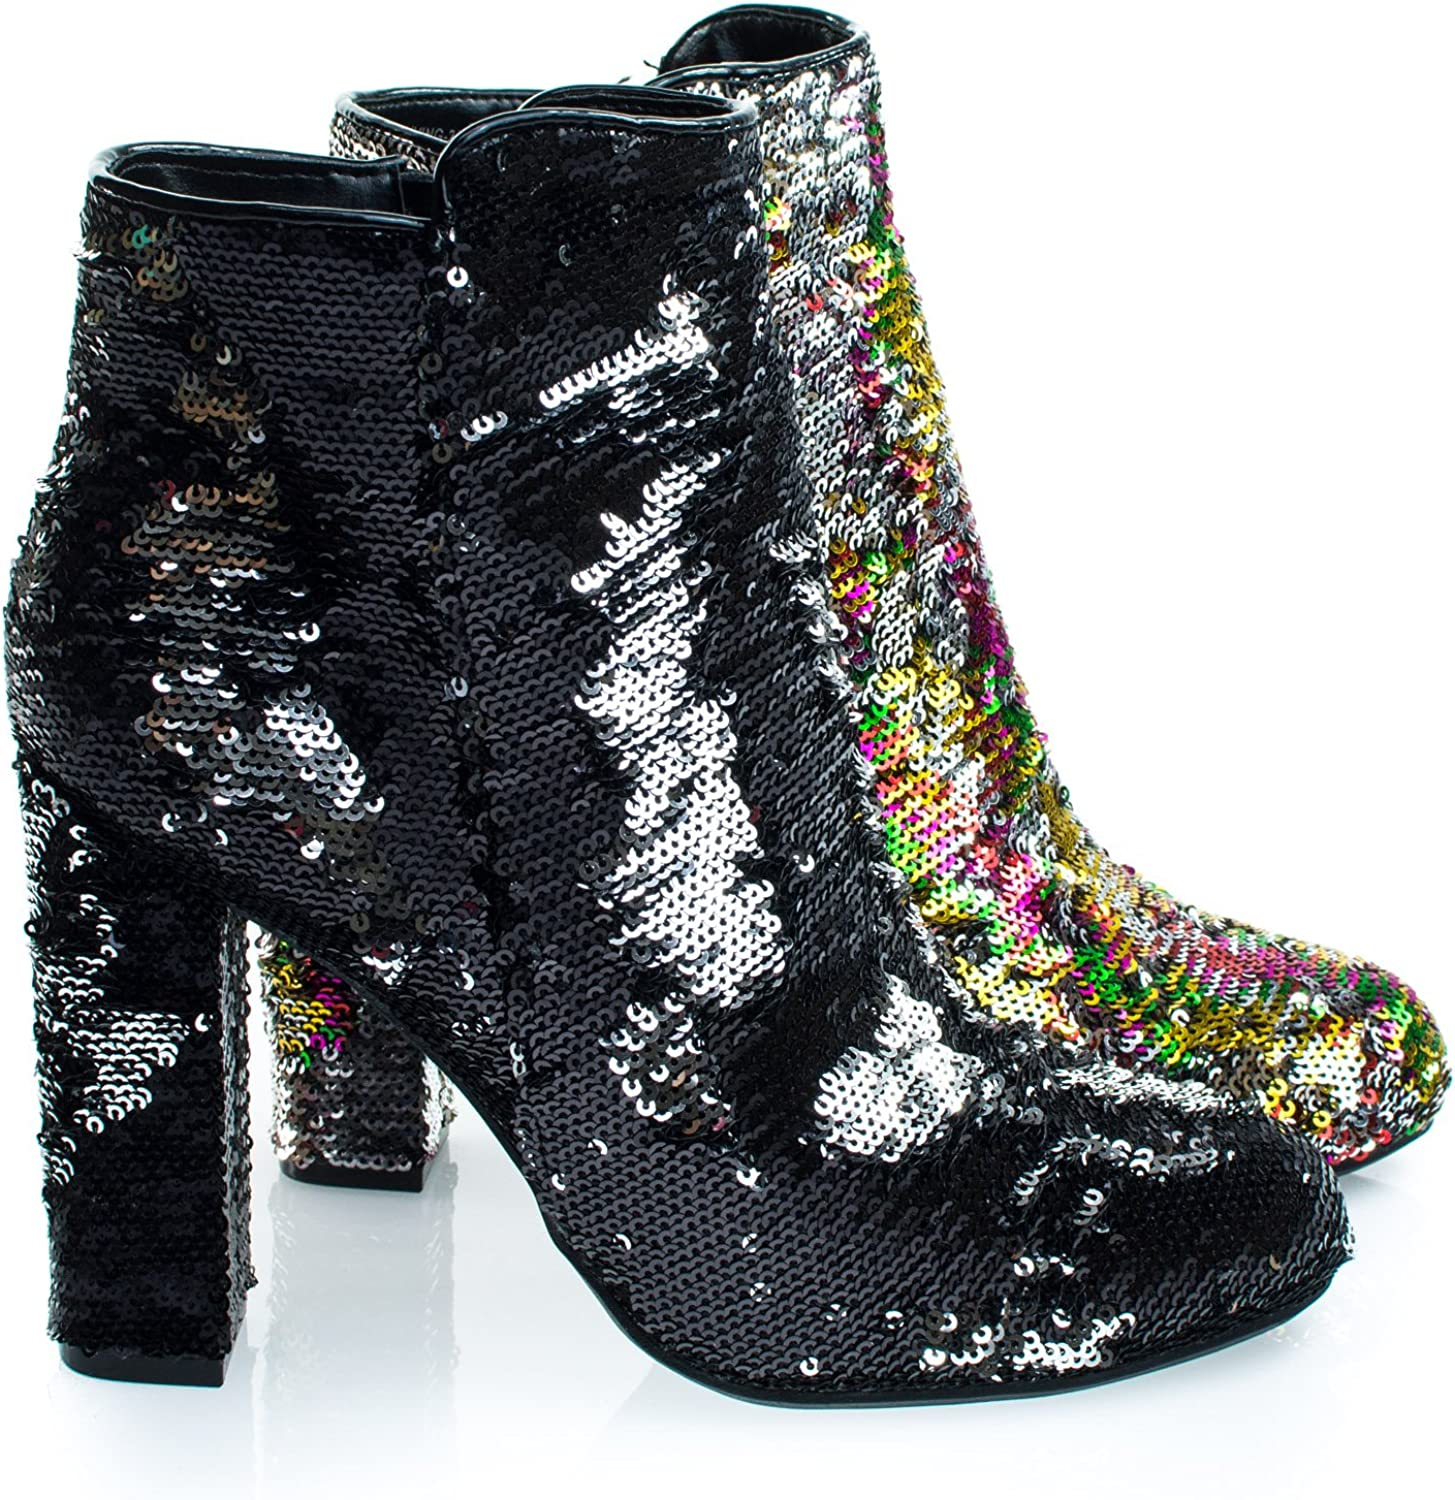 Reversible Sequins Block Heel Ankle Bootie